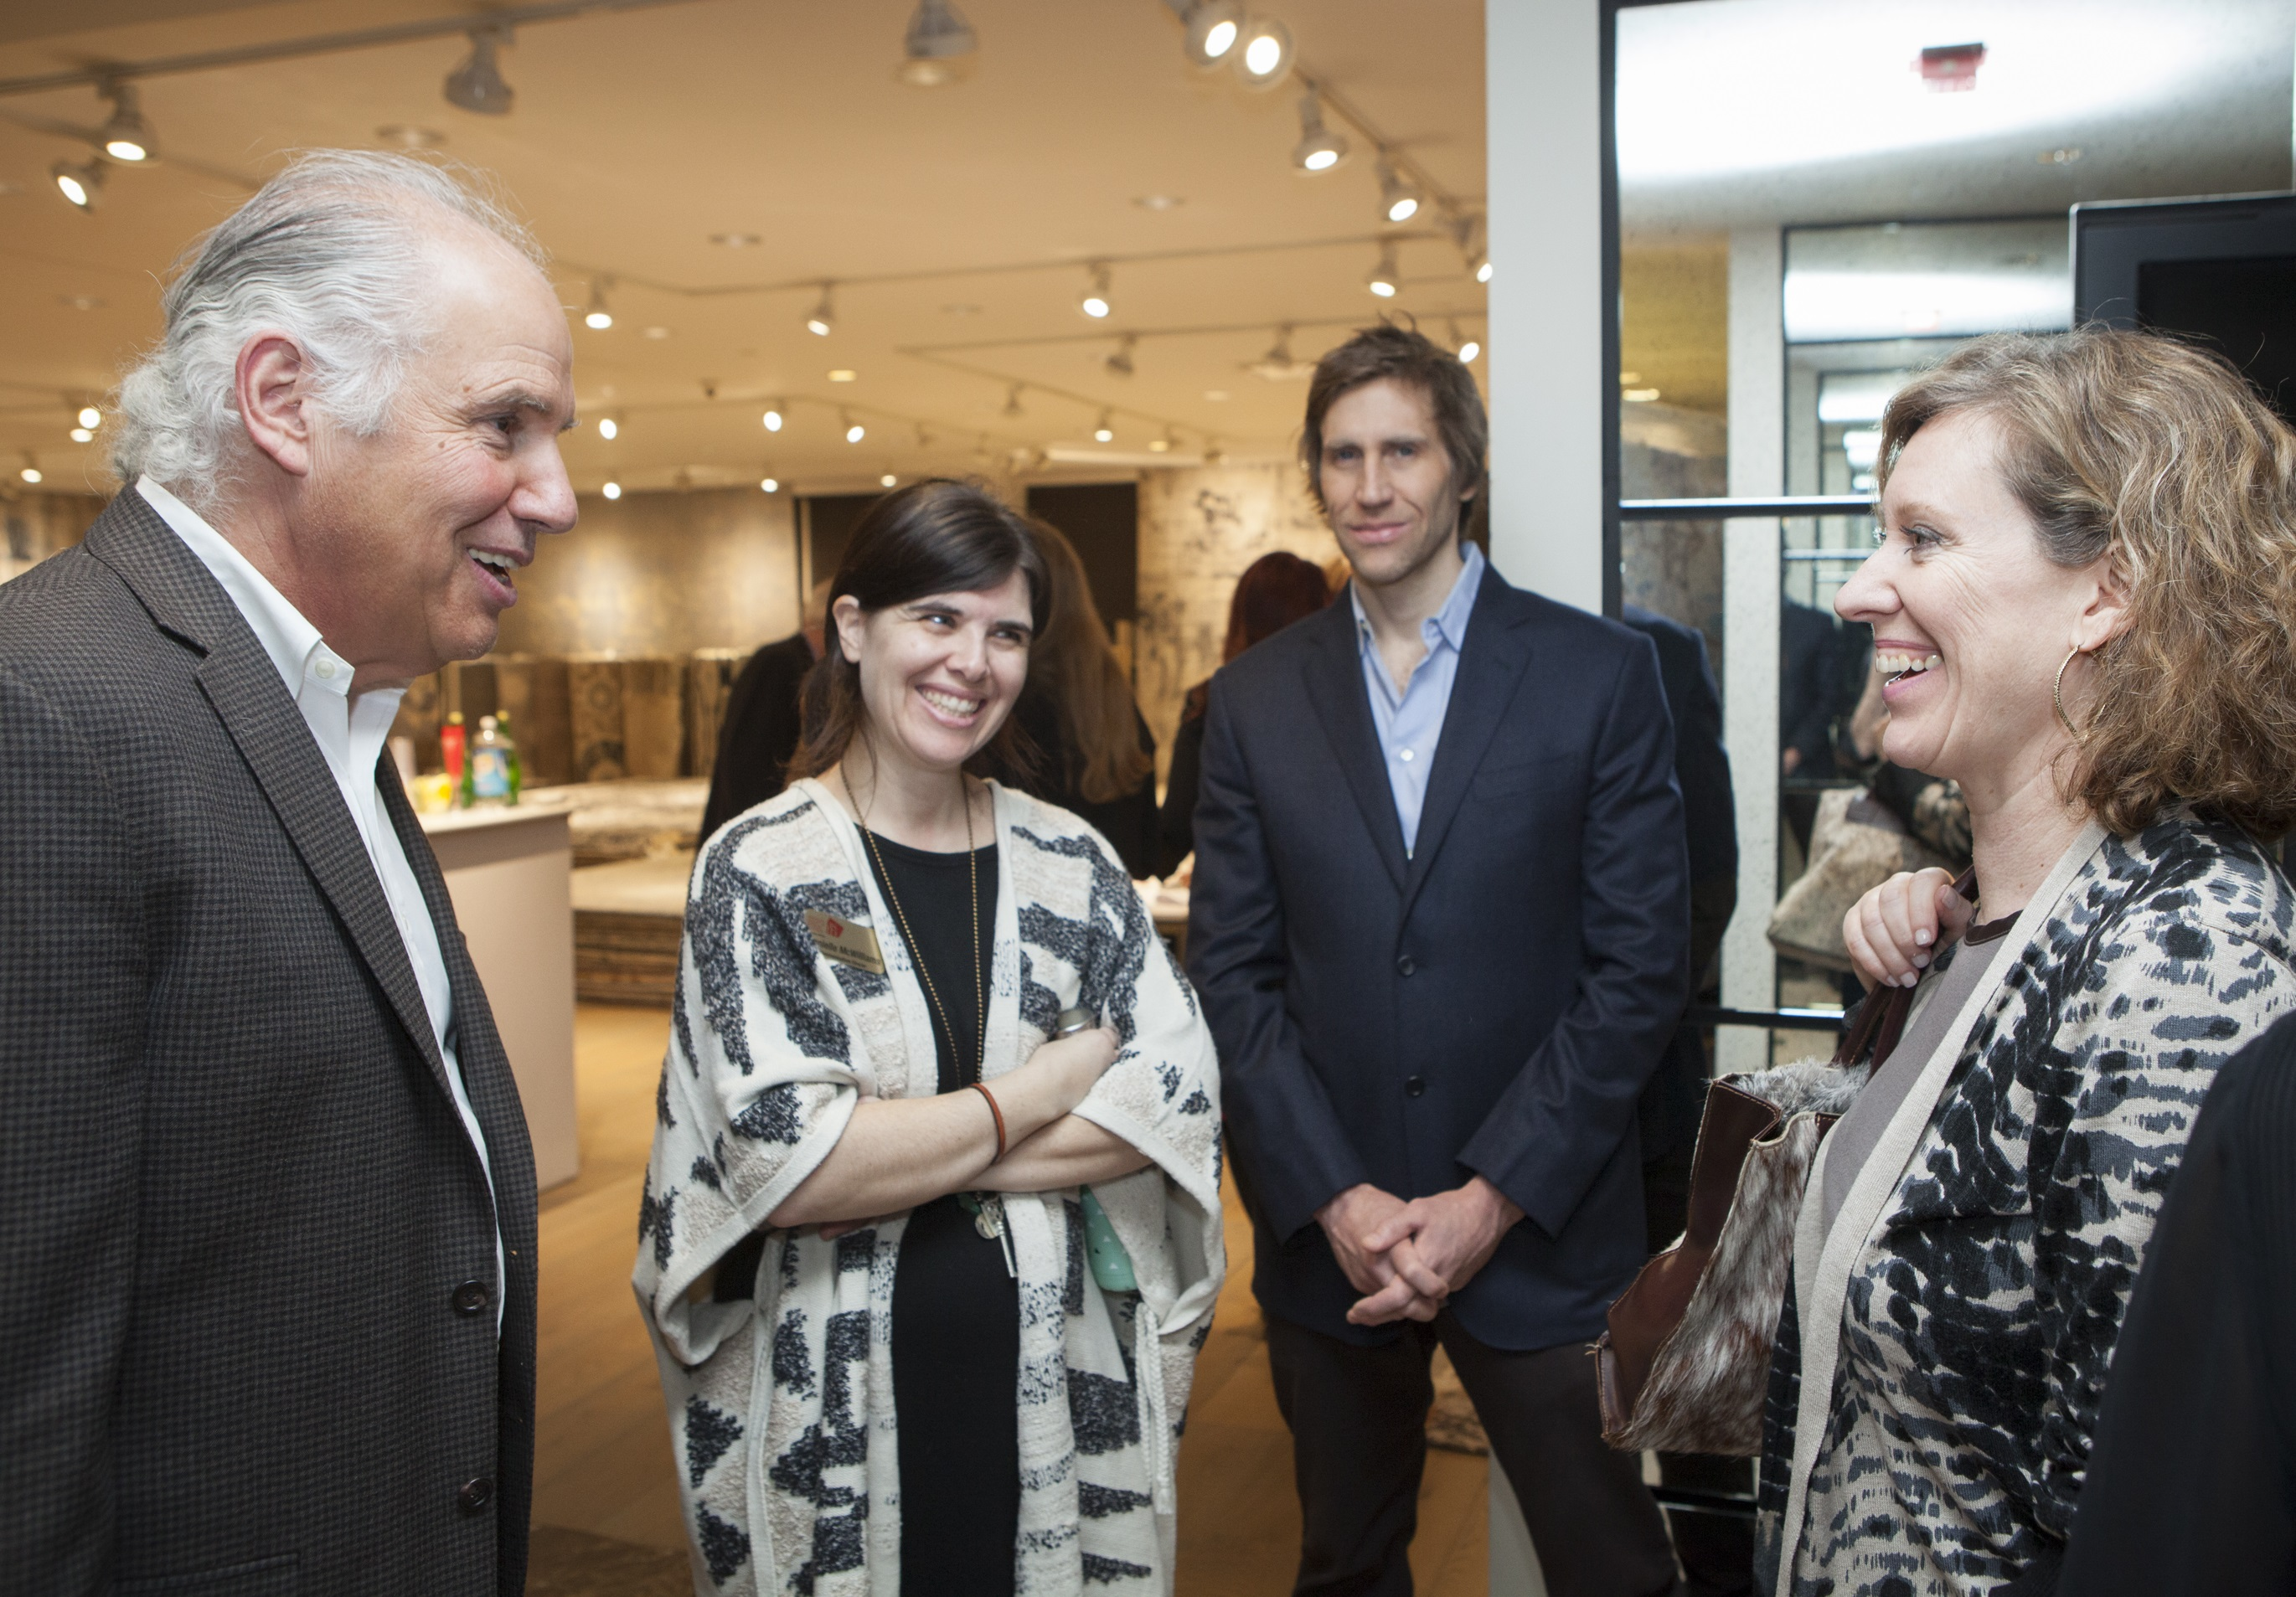 Steve Mandel, ASPIRE Communications, with Danielle McWilliams, communications director of ASID NY Metro, and Diana Mosher